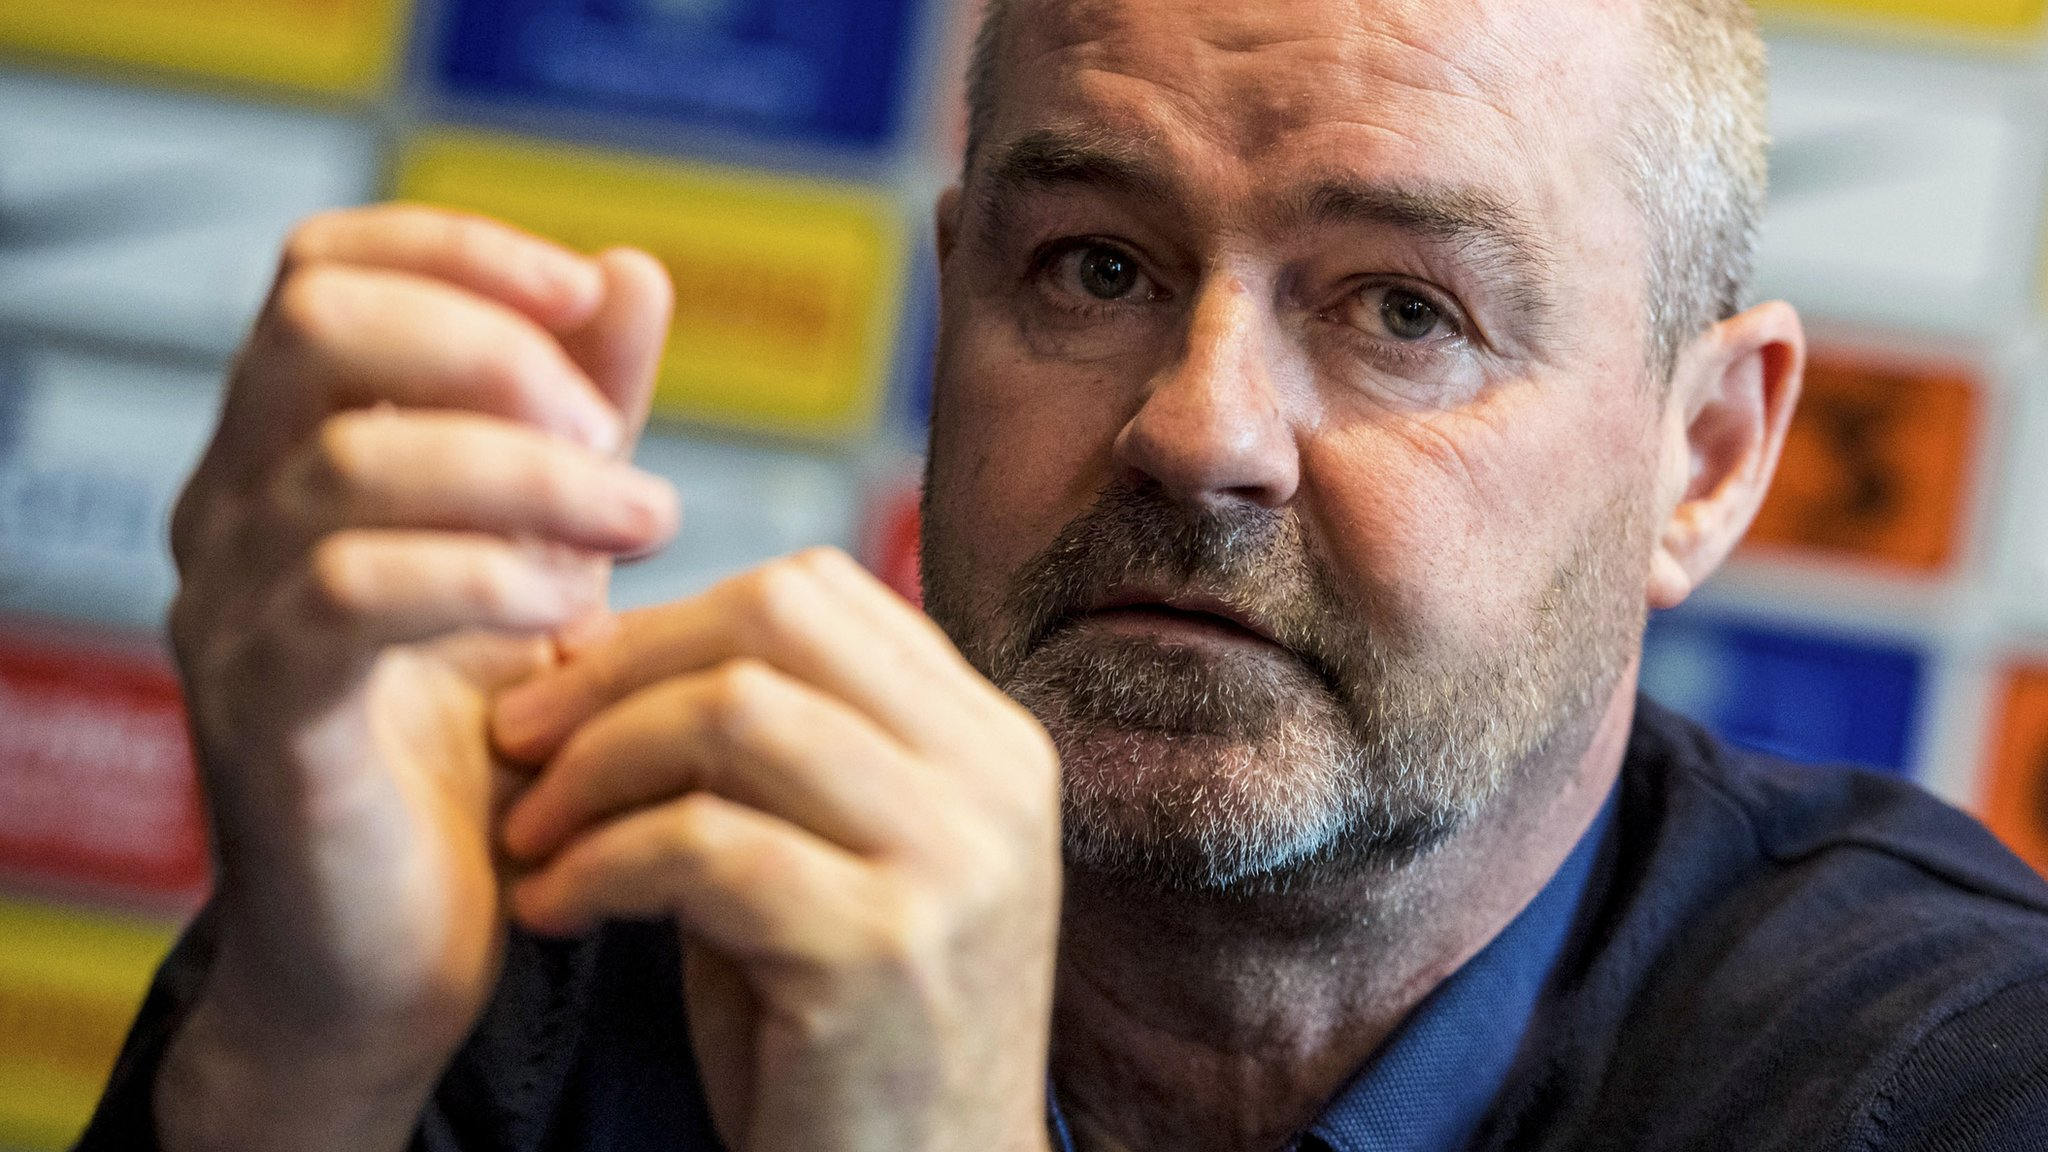 Scotland: Kilmarnock boss Steve Clarke not contacted over manager's job